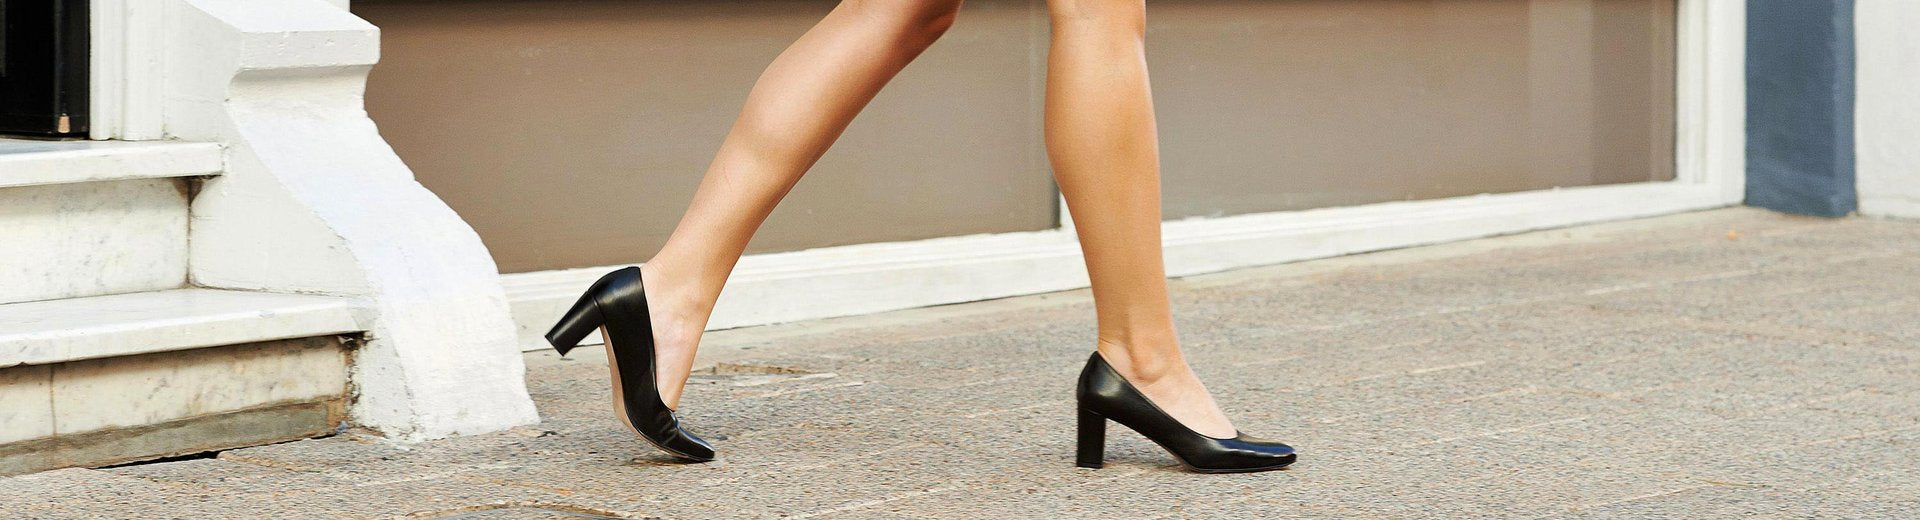 Louise M shoes stylish and comfortable shoes for cabin crew and corporate women